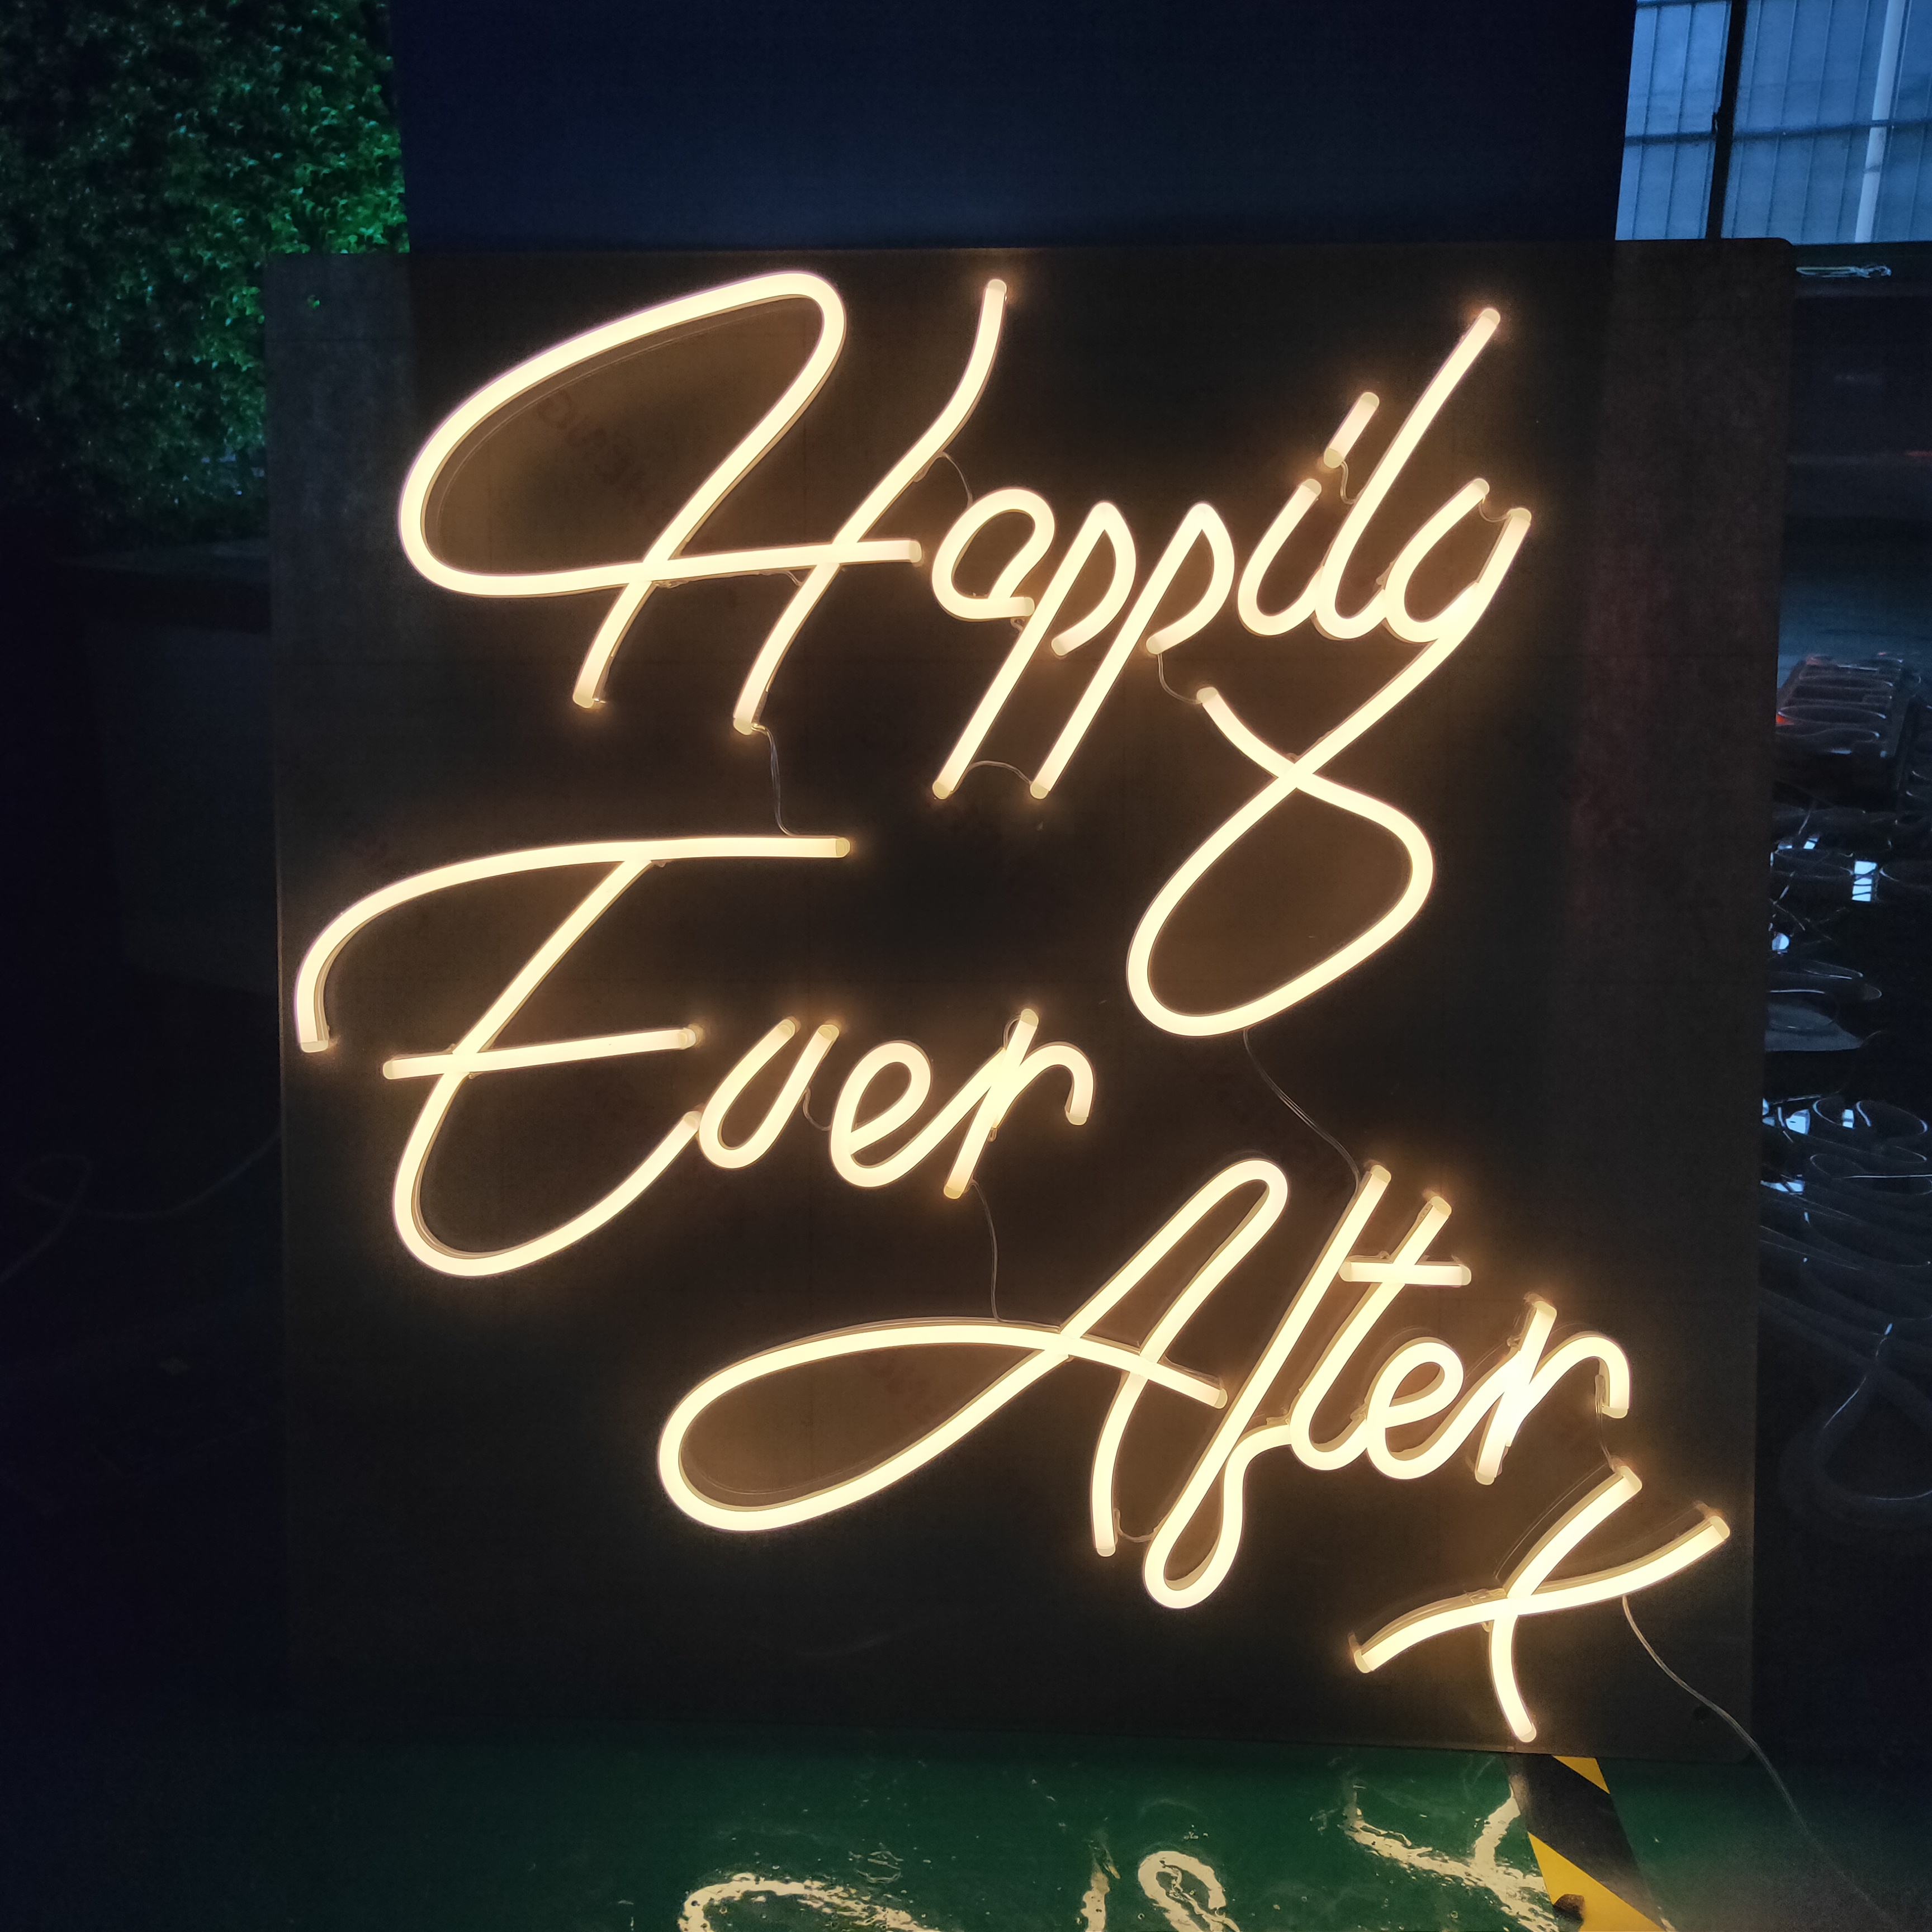 Happily ever alter Custom neon acrylic <strong>sign</strong> LED custom flex neon light <strong>sign</strong>